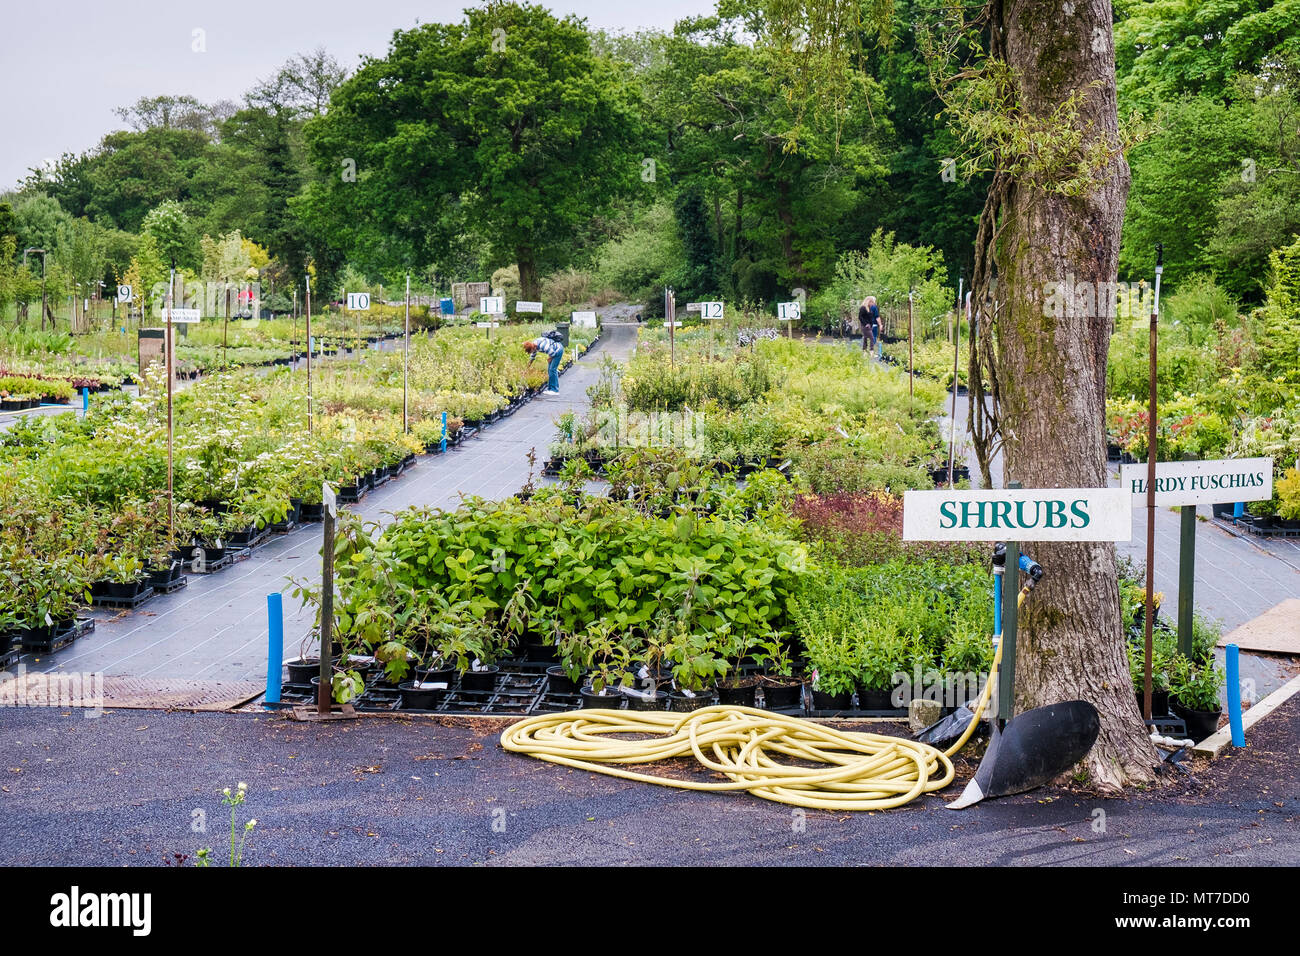 A Wide Selection Of Plants For Sale In A Large Garden Centre Nursery Stock Photo 187019644 Alamy